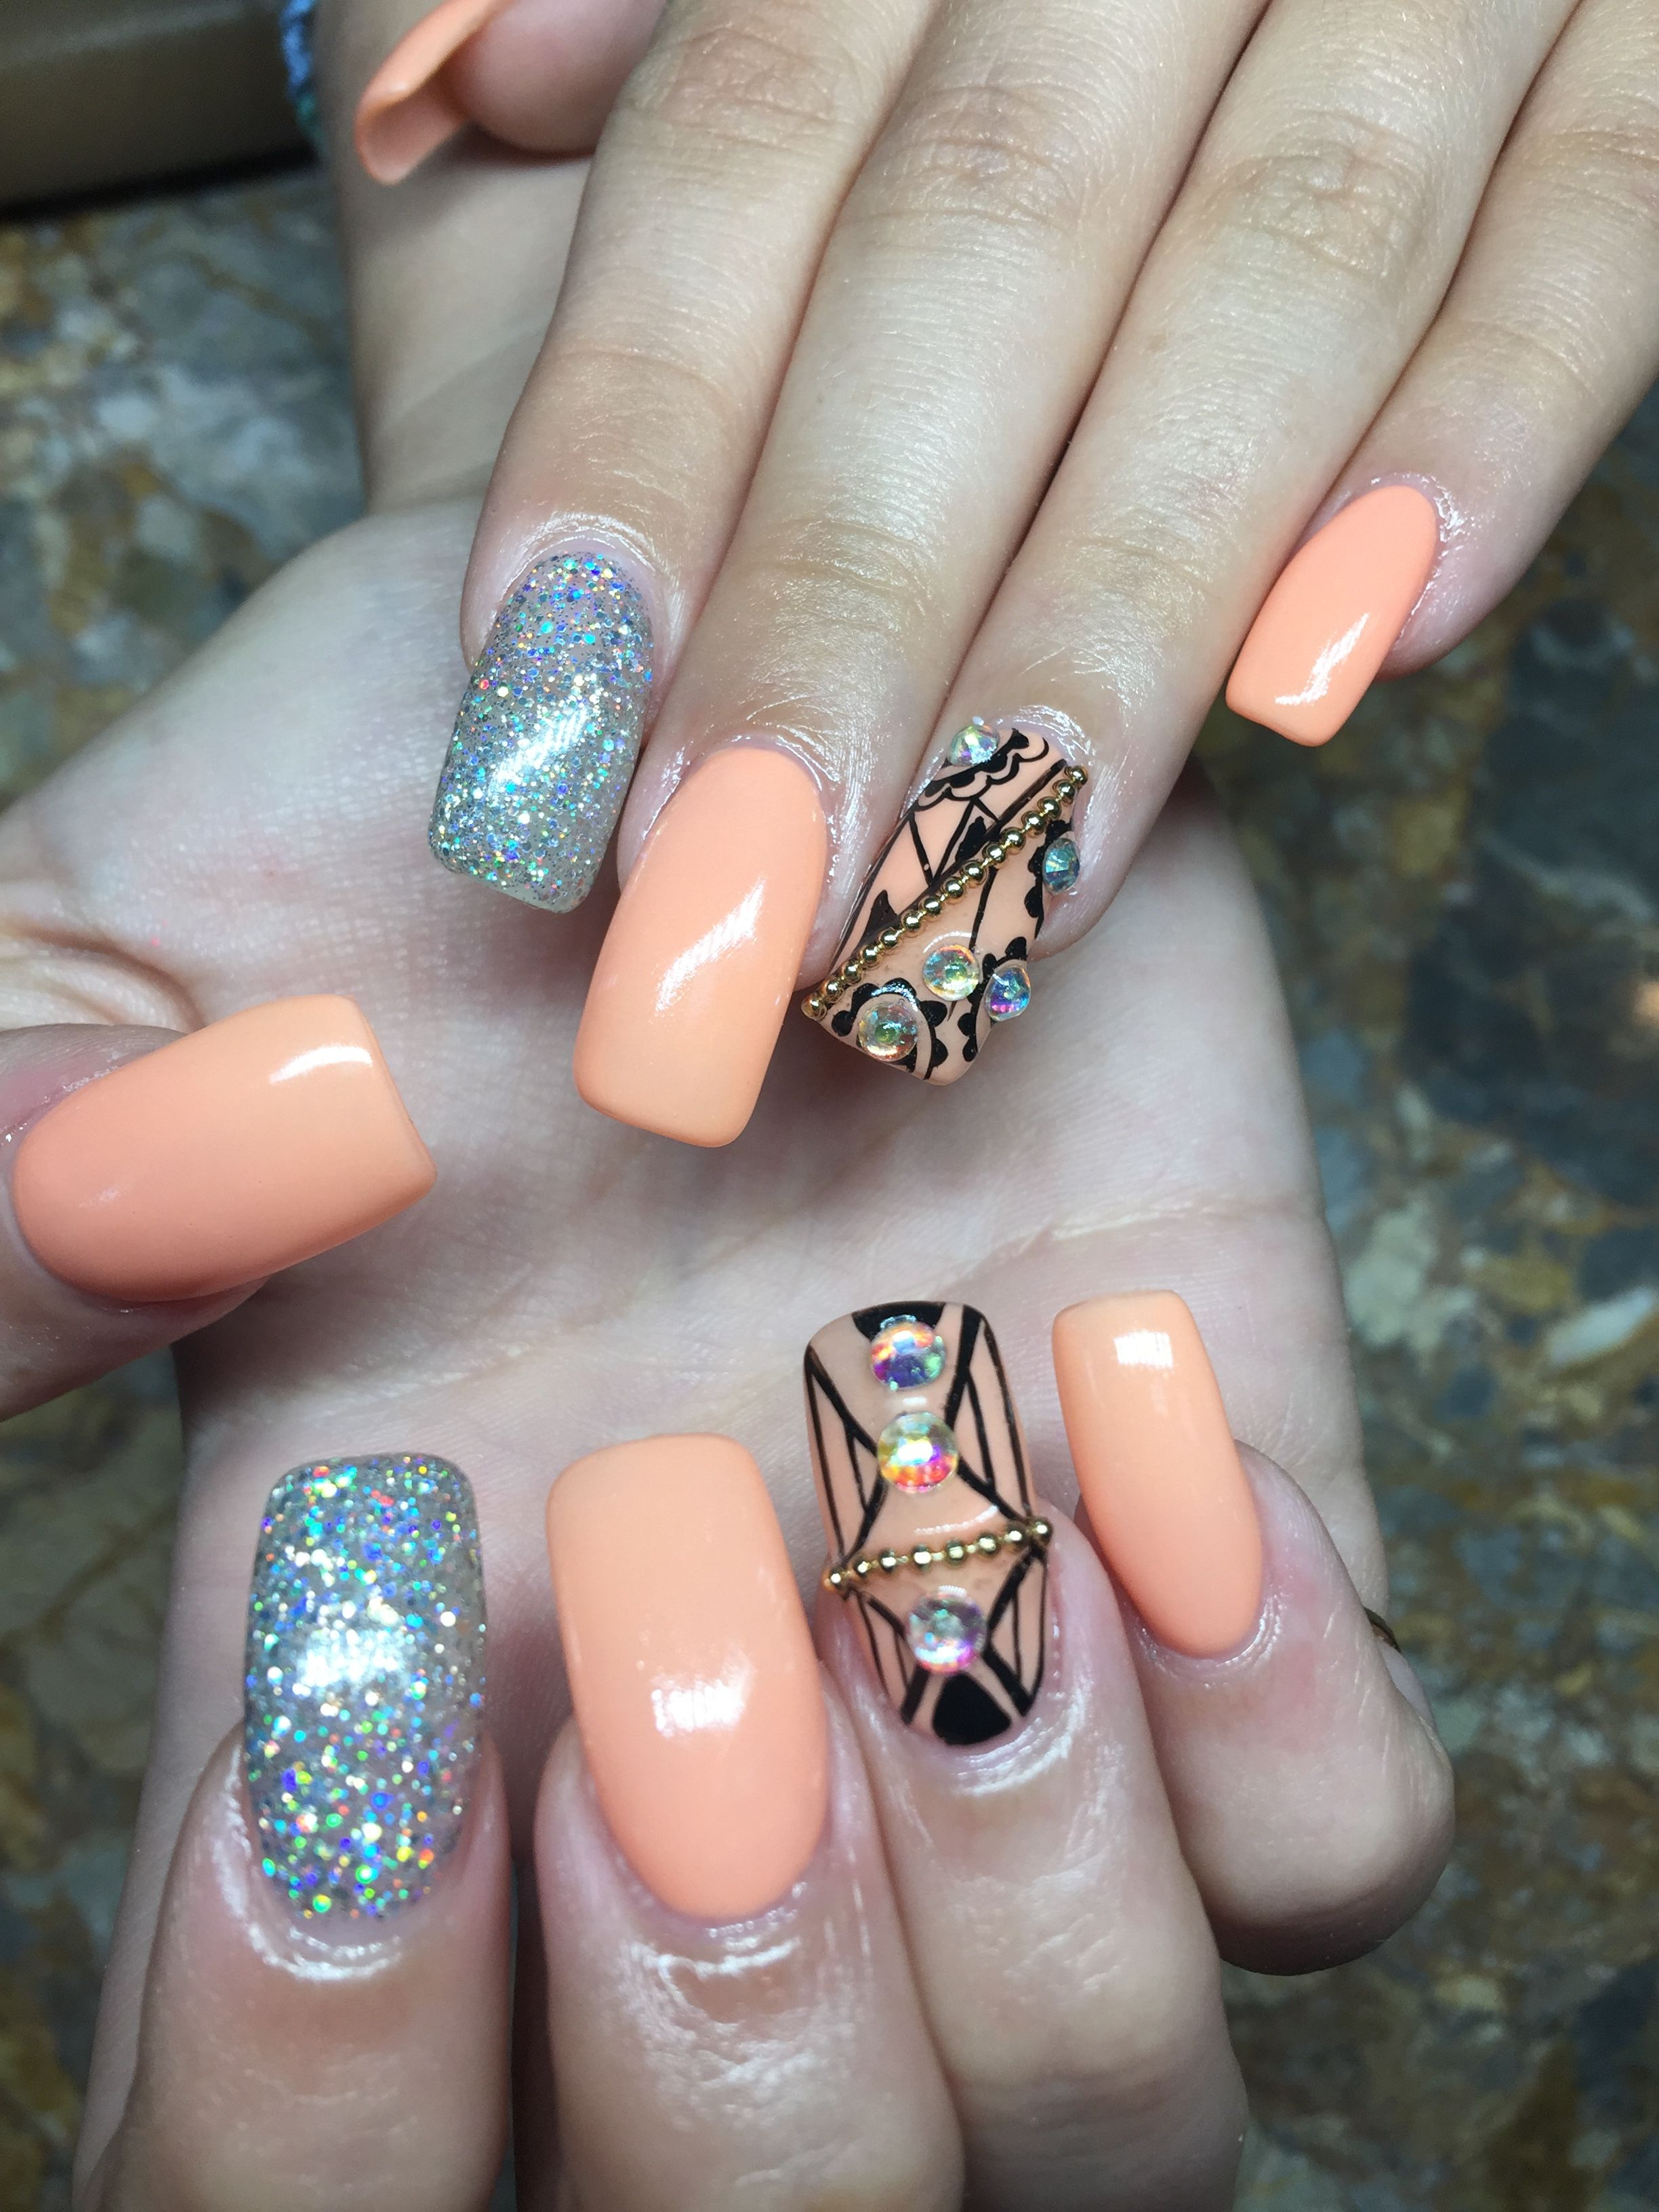 Pin on Nails by Kelly